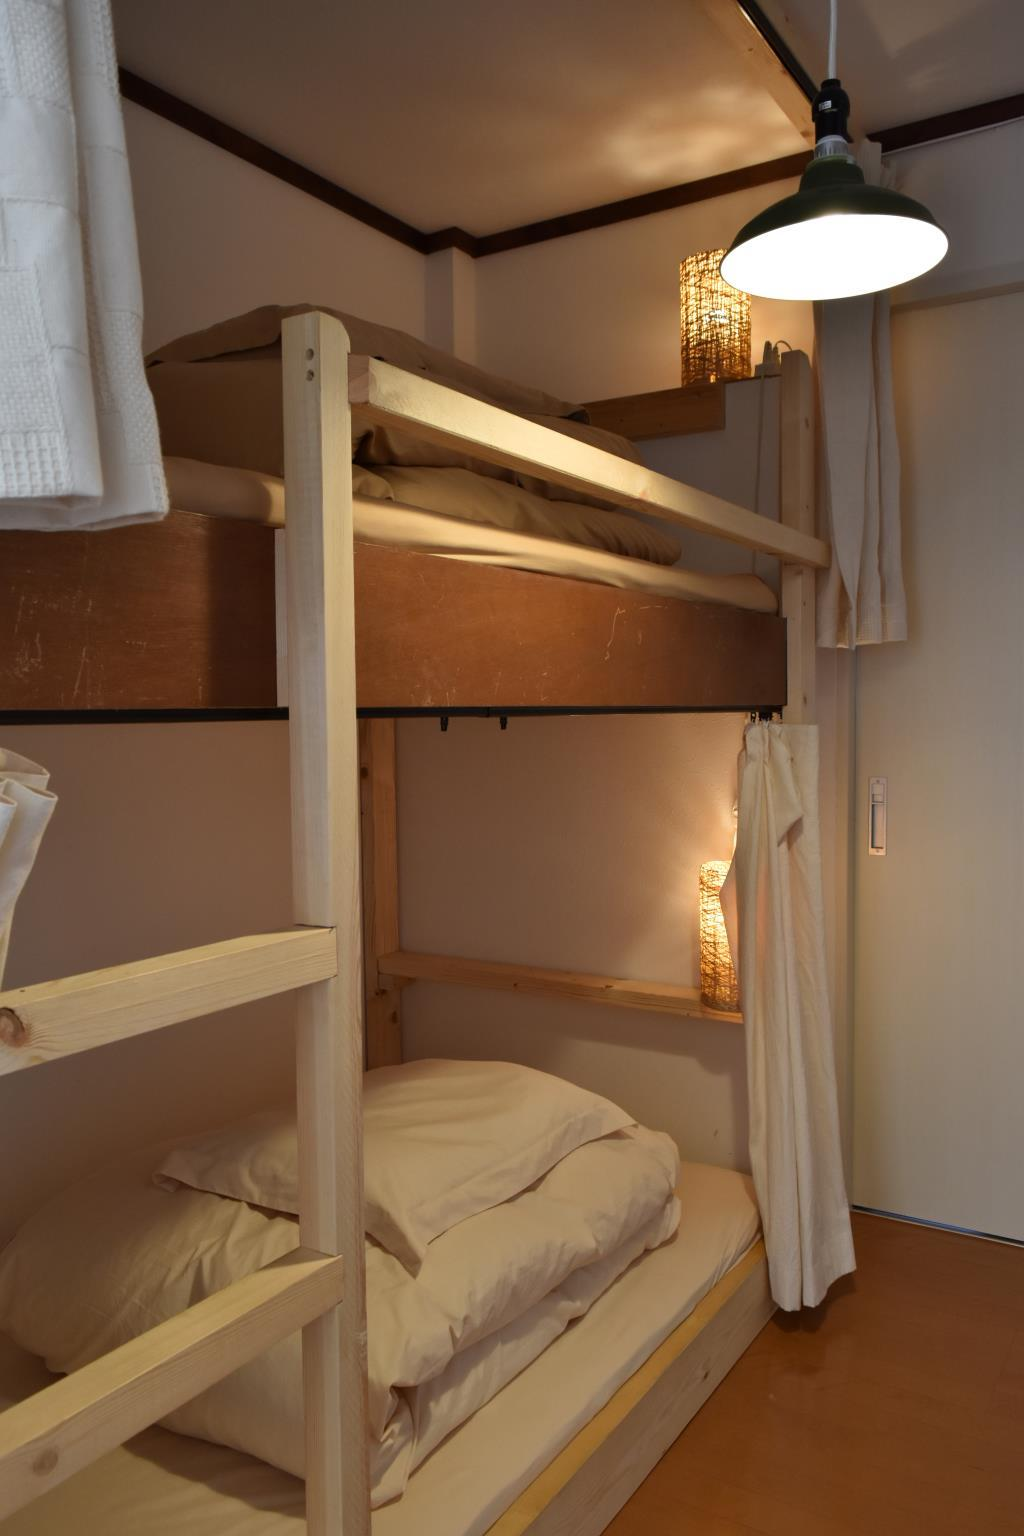 Llitera privada (Private Bunk)